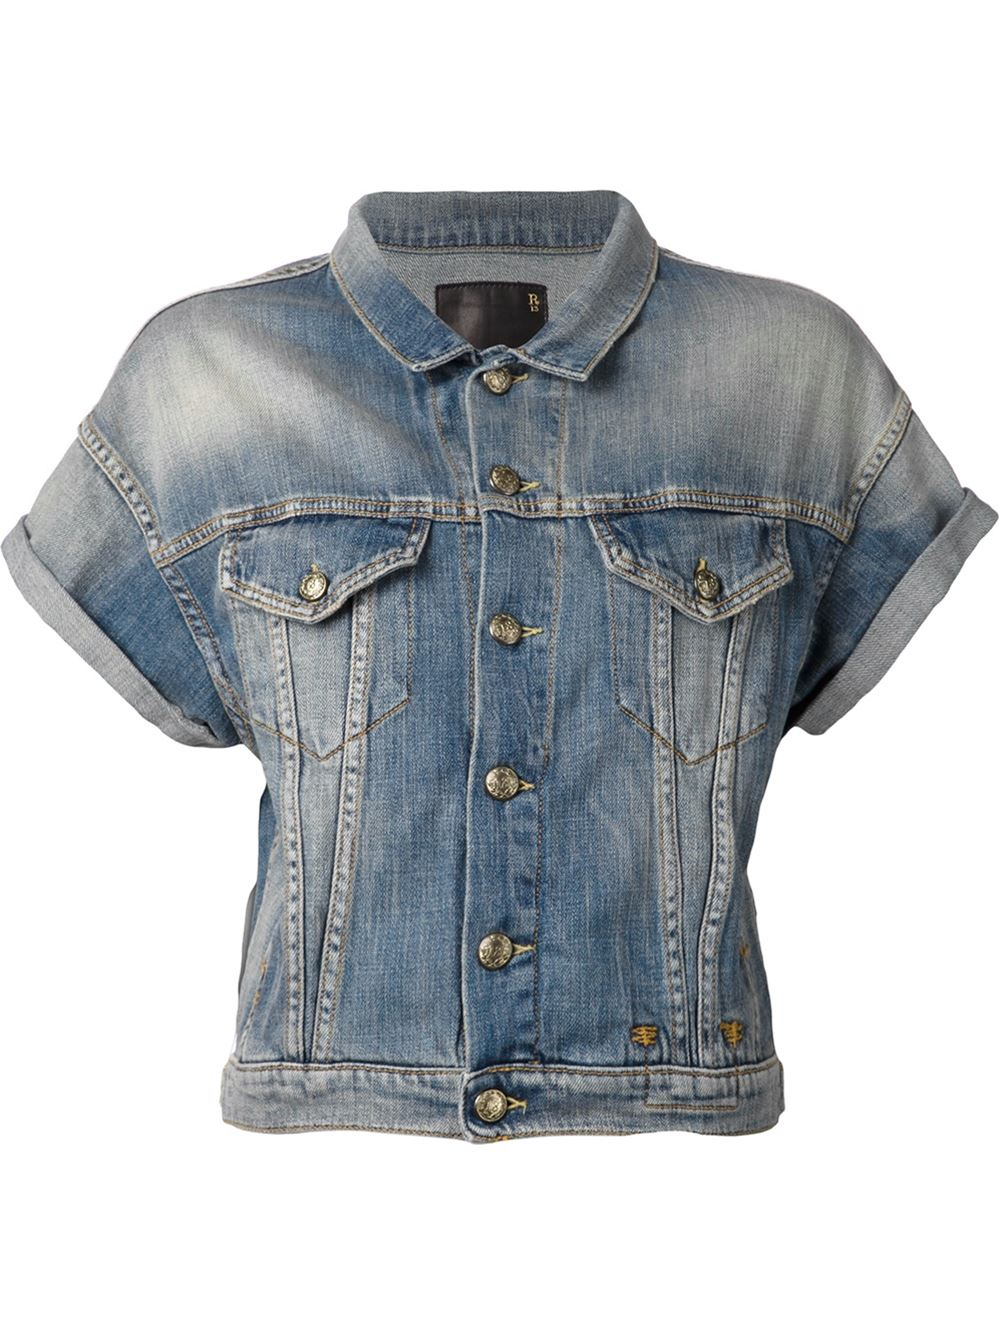 Shop for short sleeve denim jacket online at Target. Free shipping on purchases over $35 and save 5% every day with your Target REDcard.